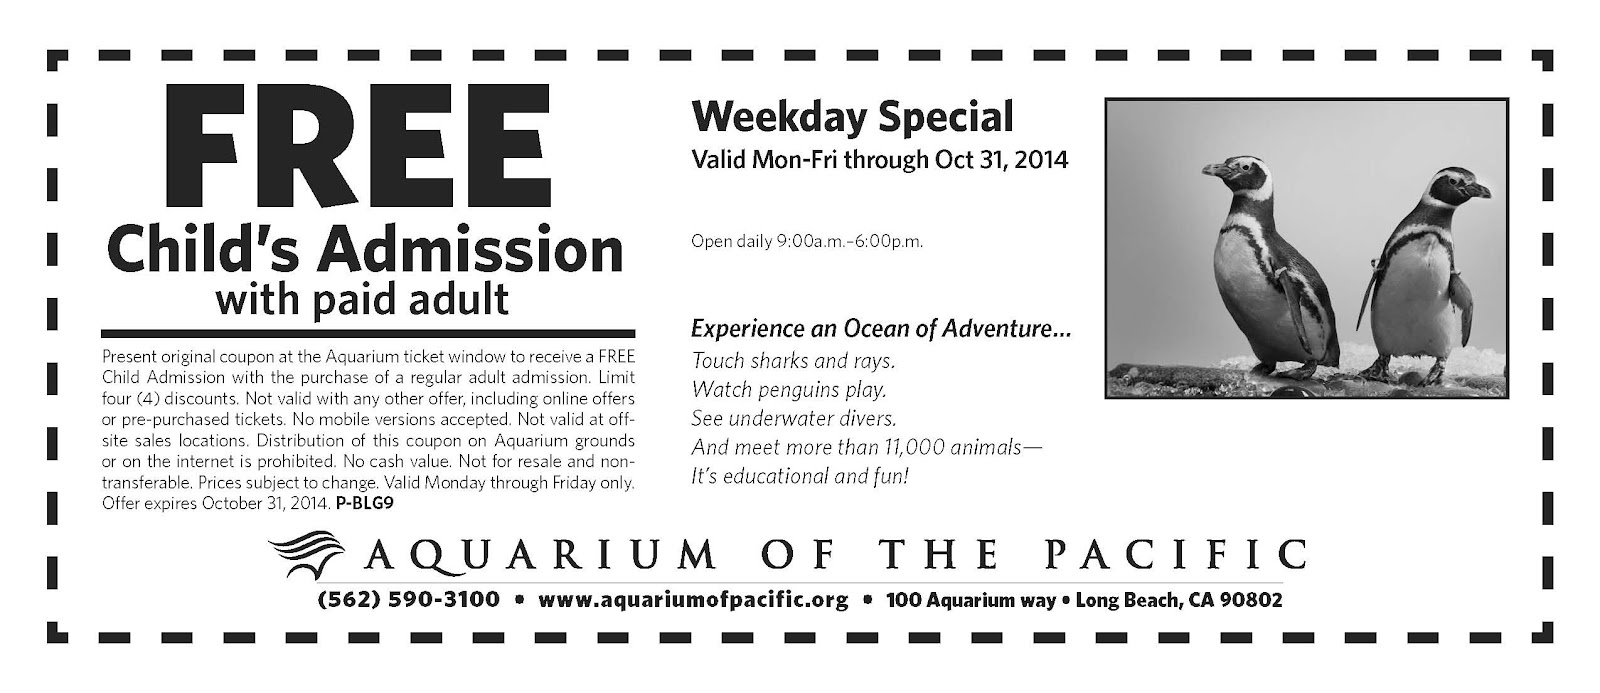 image about Aquarium of the Pacific Coupons Printable called Aquarium of the pacific price cut coupon codes 2018 : Pizza discounts